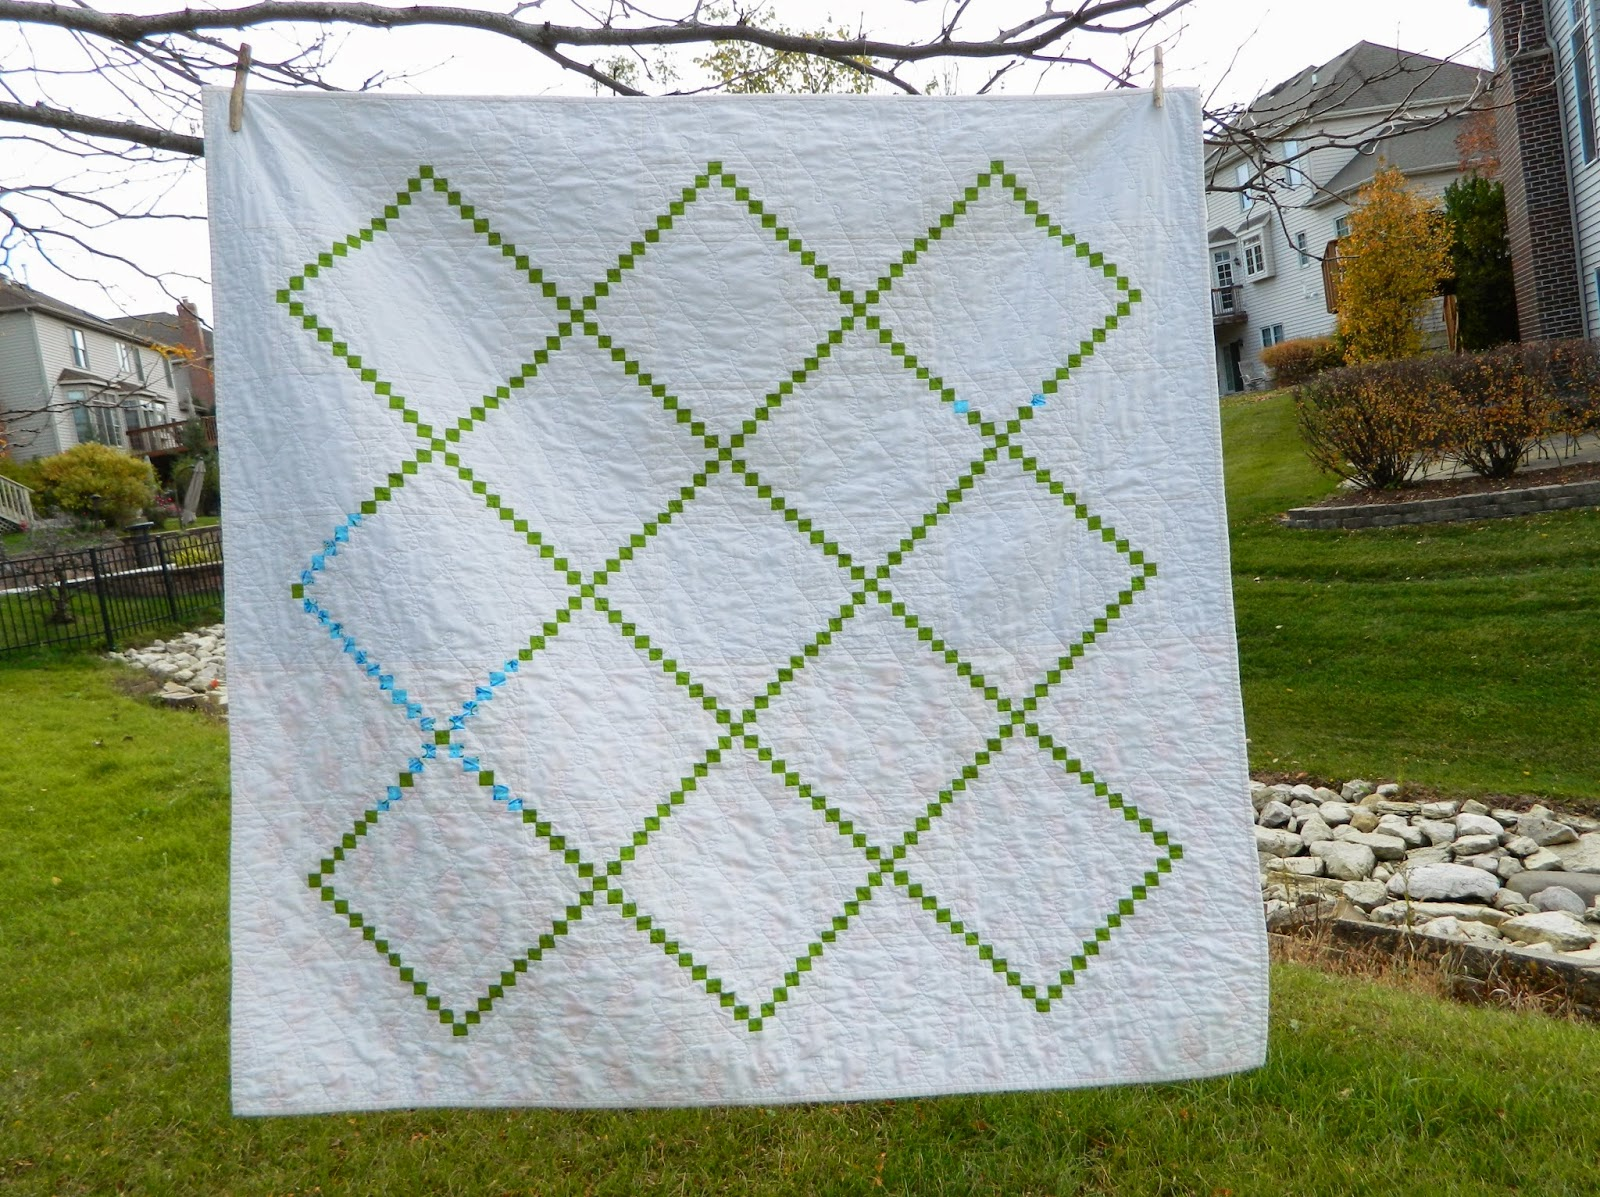 http://sotakhandmade.blogspot.com/2014/10/irish-chain-finished-quilt.html